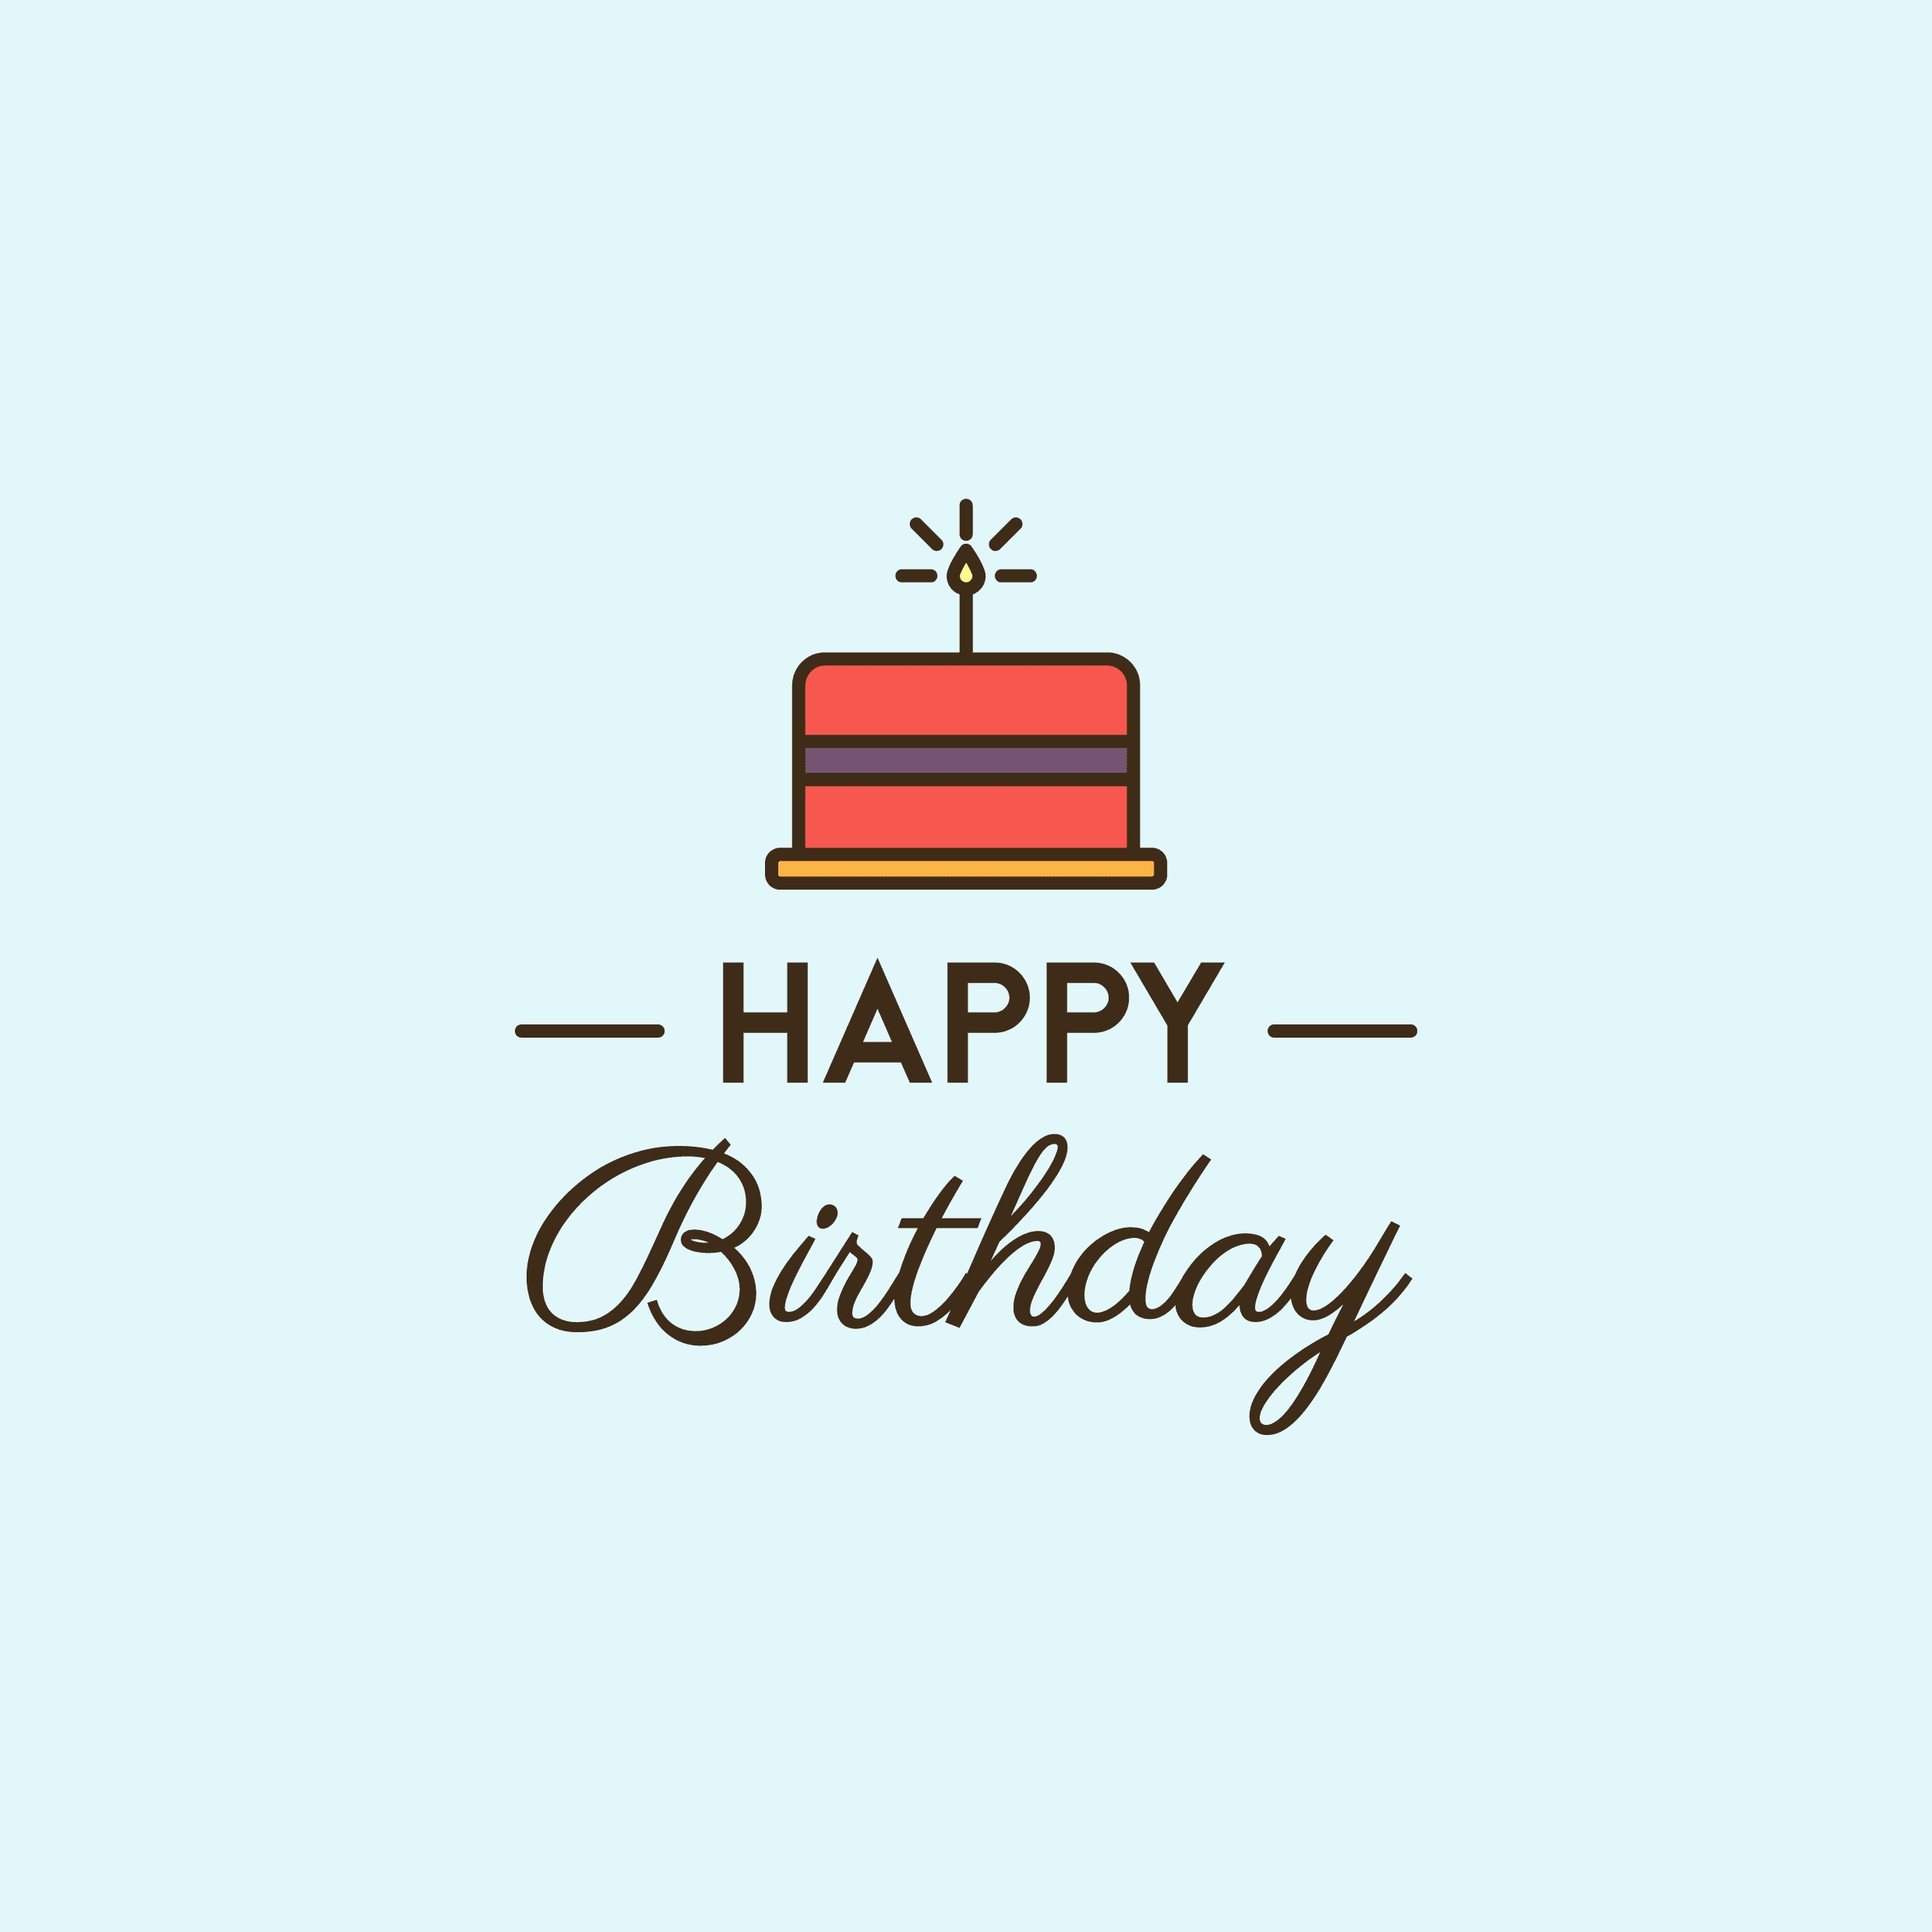 automatic birthday card service ; automatic-birthday-card-service-unique-25-favorite-birthday-e-cards-and-sites-2018-of-automatic-birthday-card-service